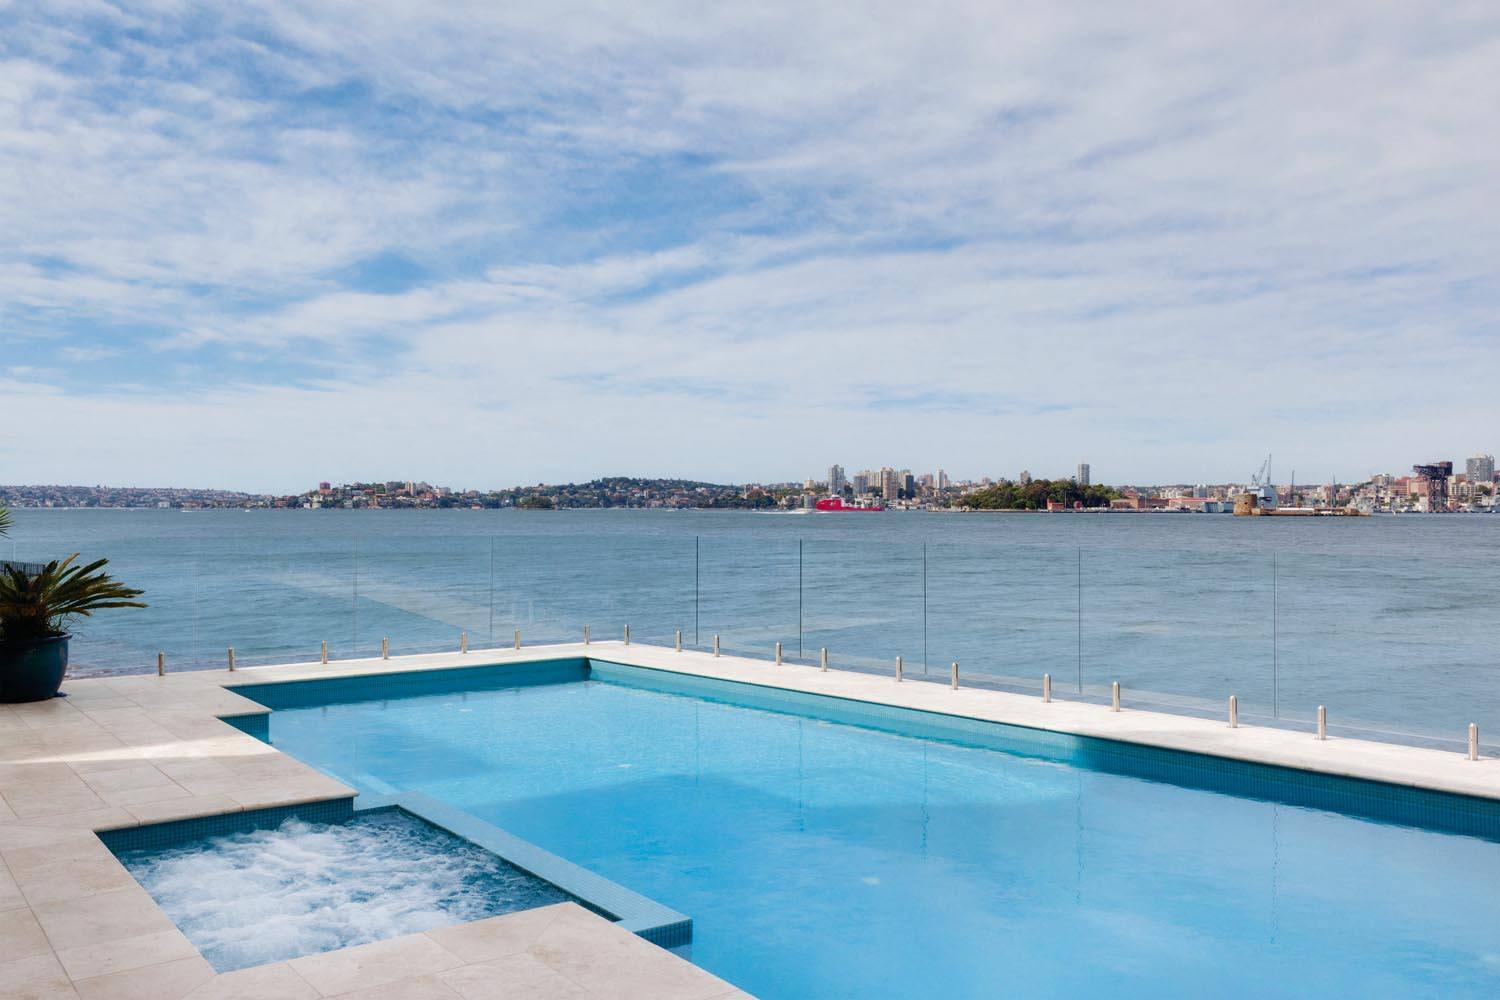 Frameless glass fencing creates the perfect effect for this harbourside pool